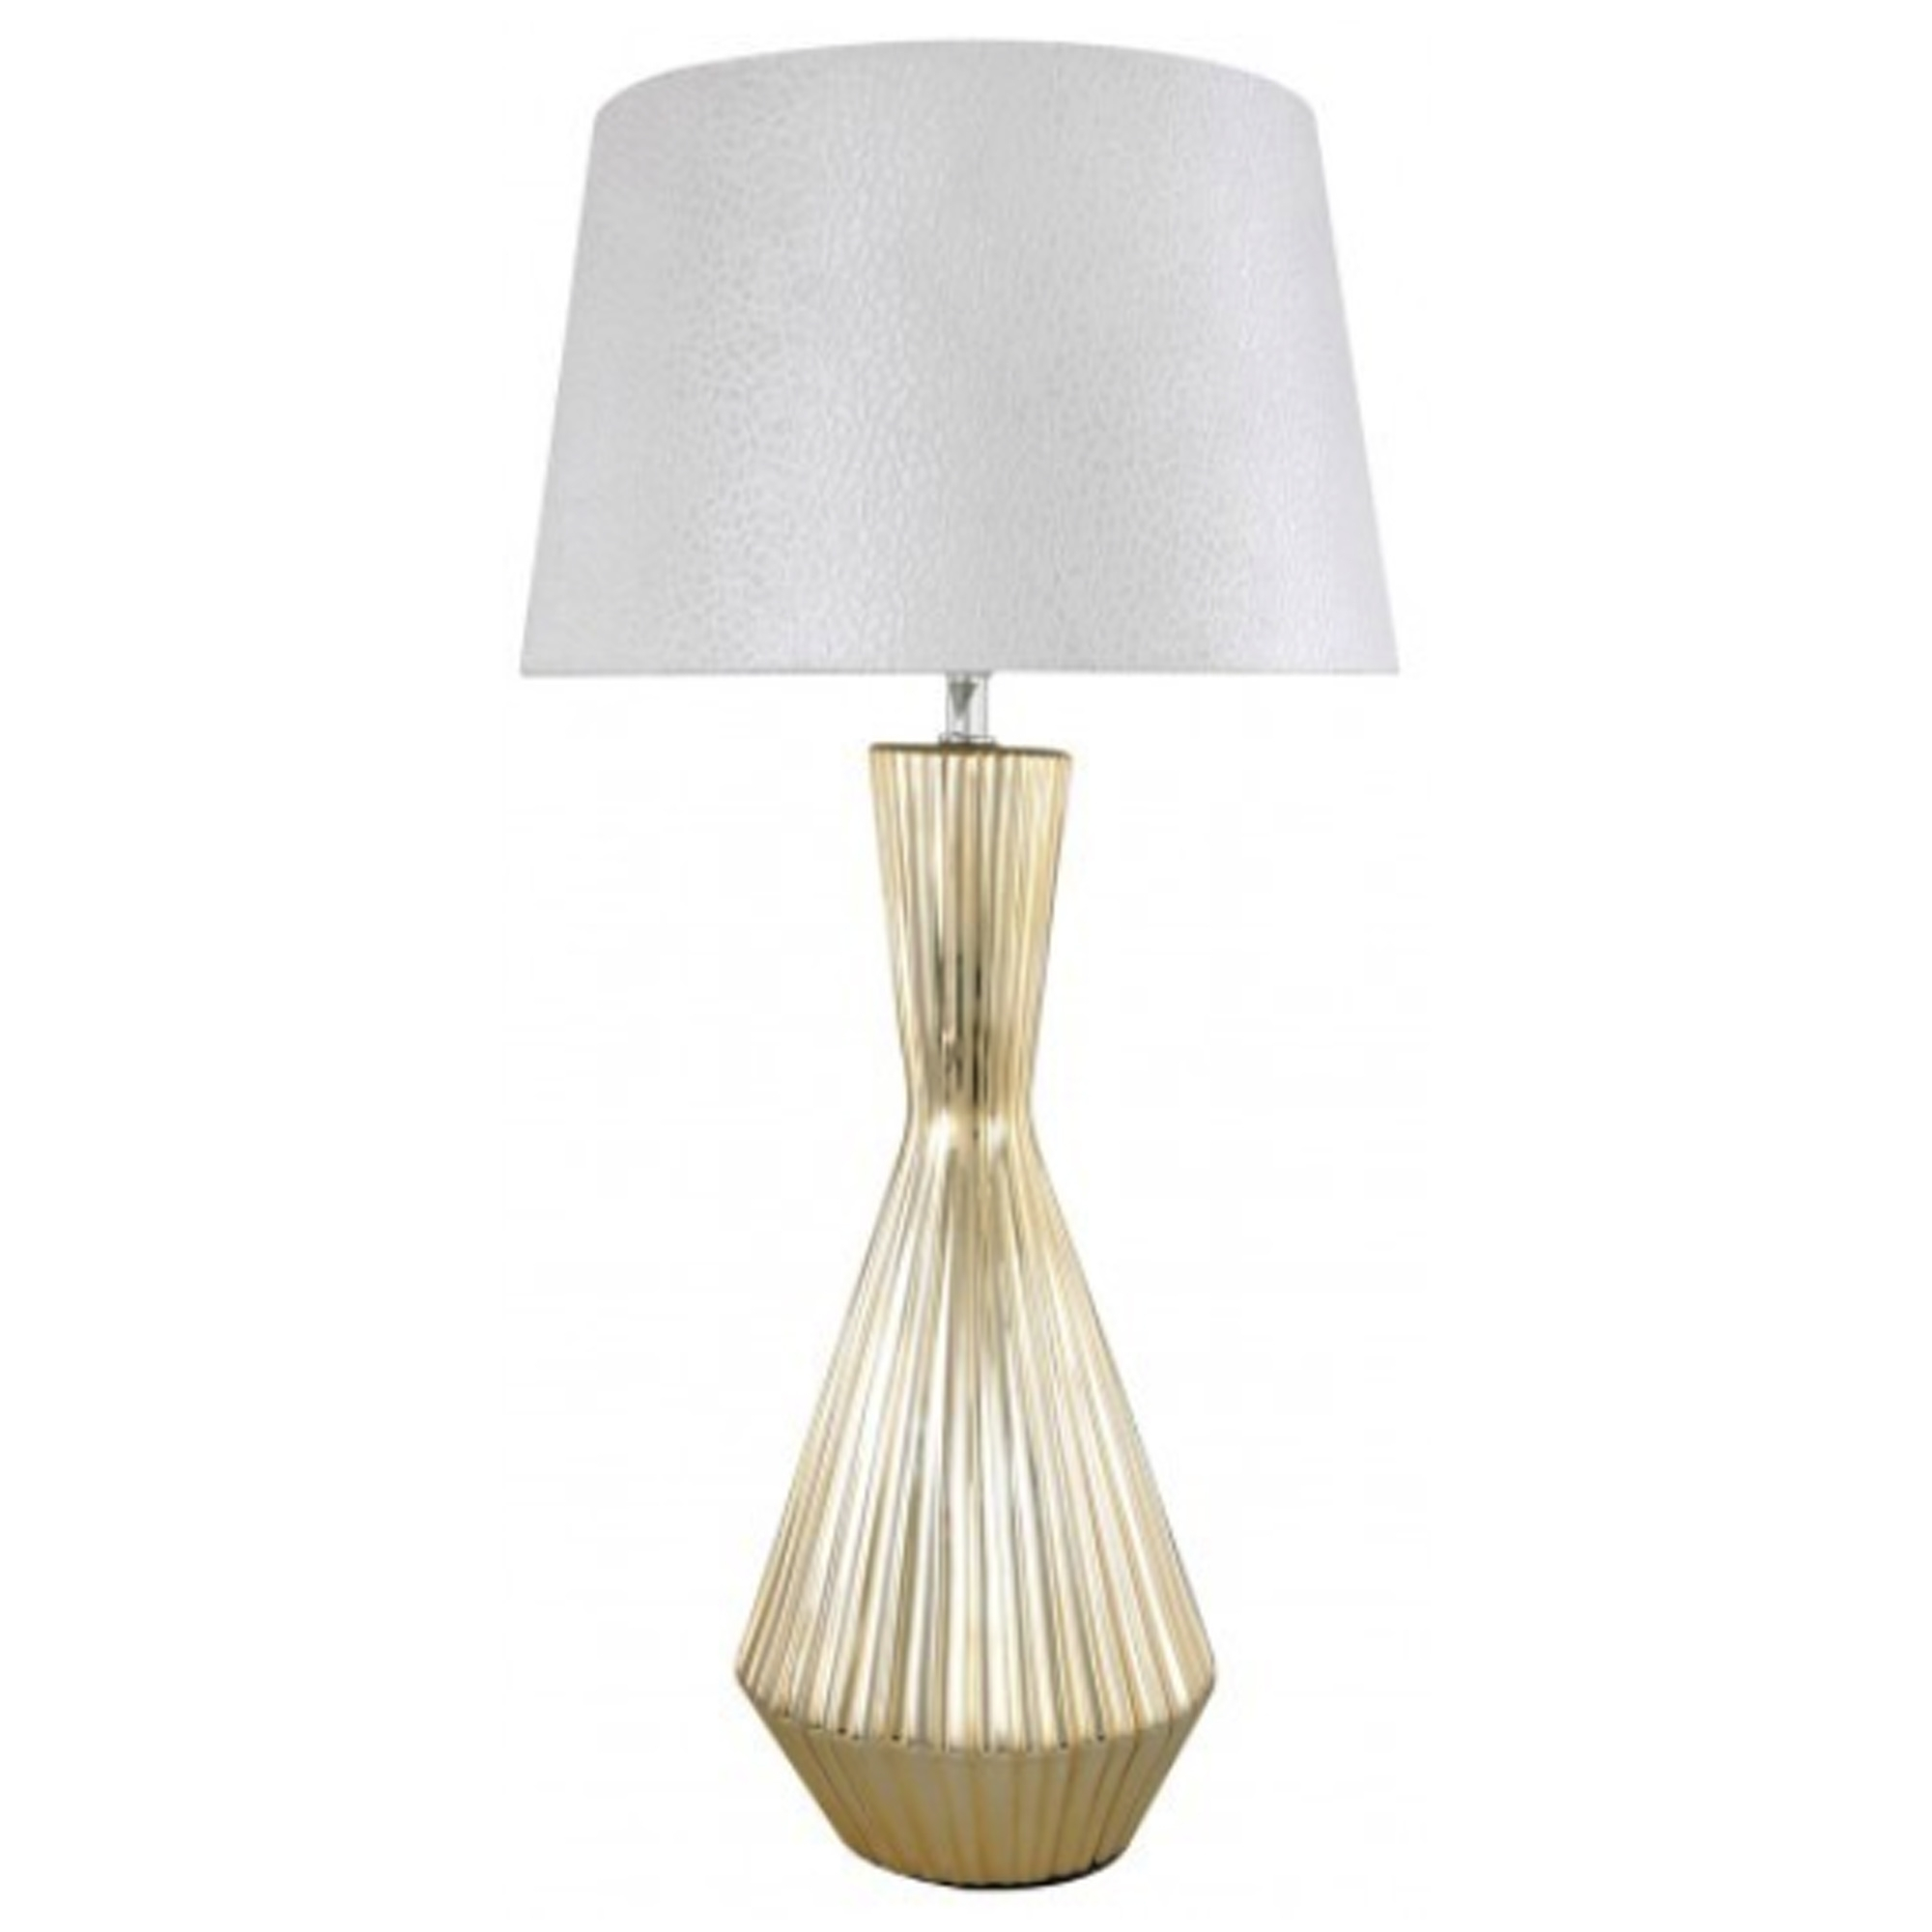 Gold Ceramic Modern Table Lamp Table Lamps Home Accessories